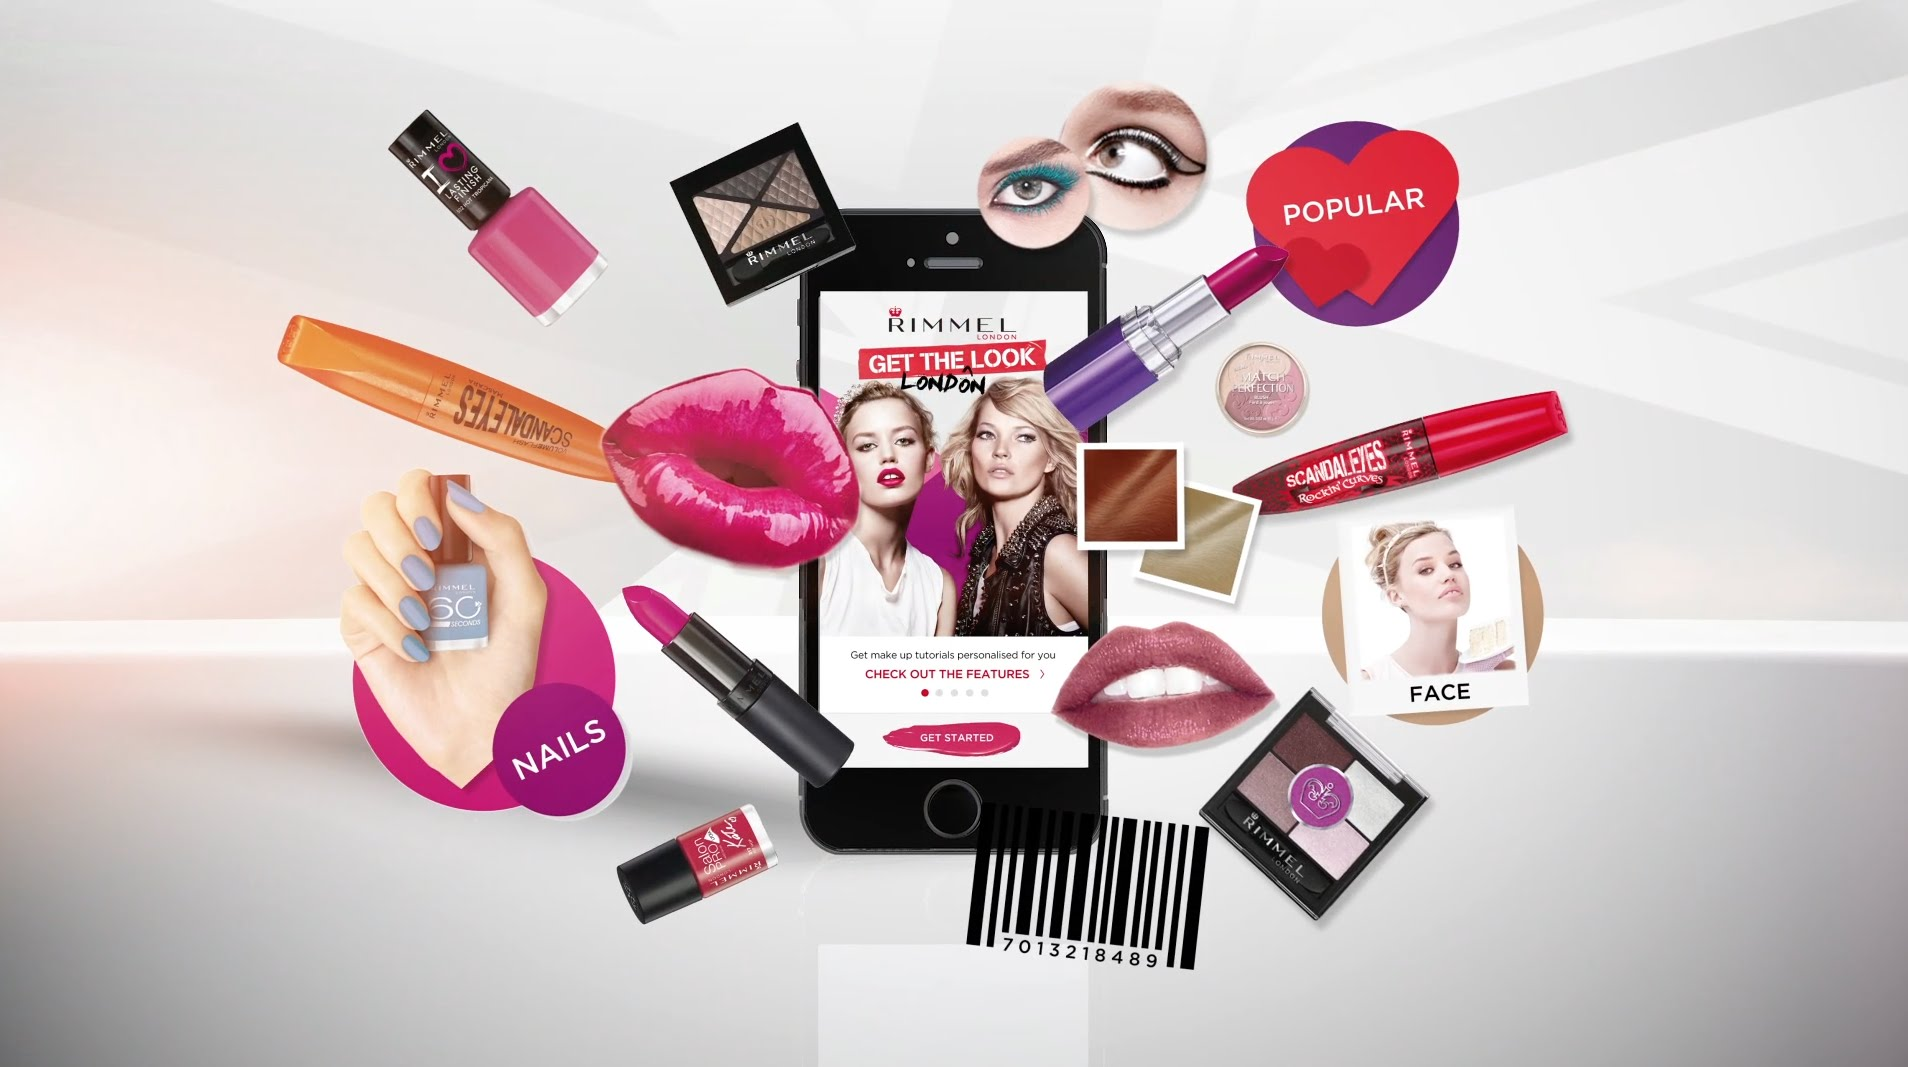 Rimmel Unveils Augmented Reality App